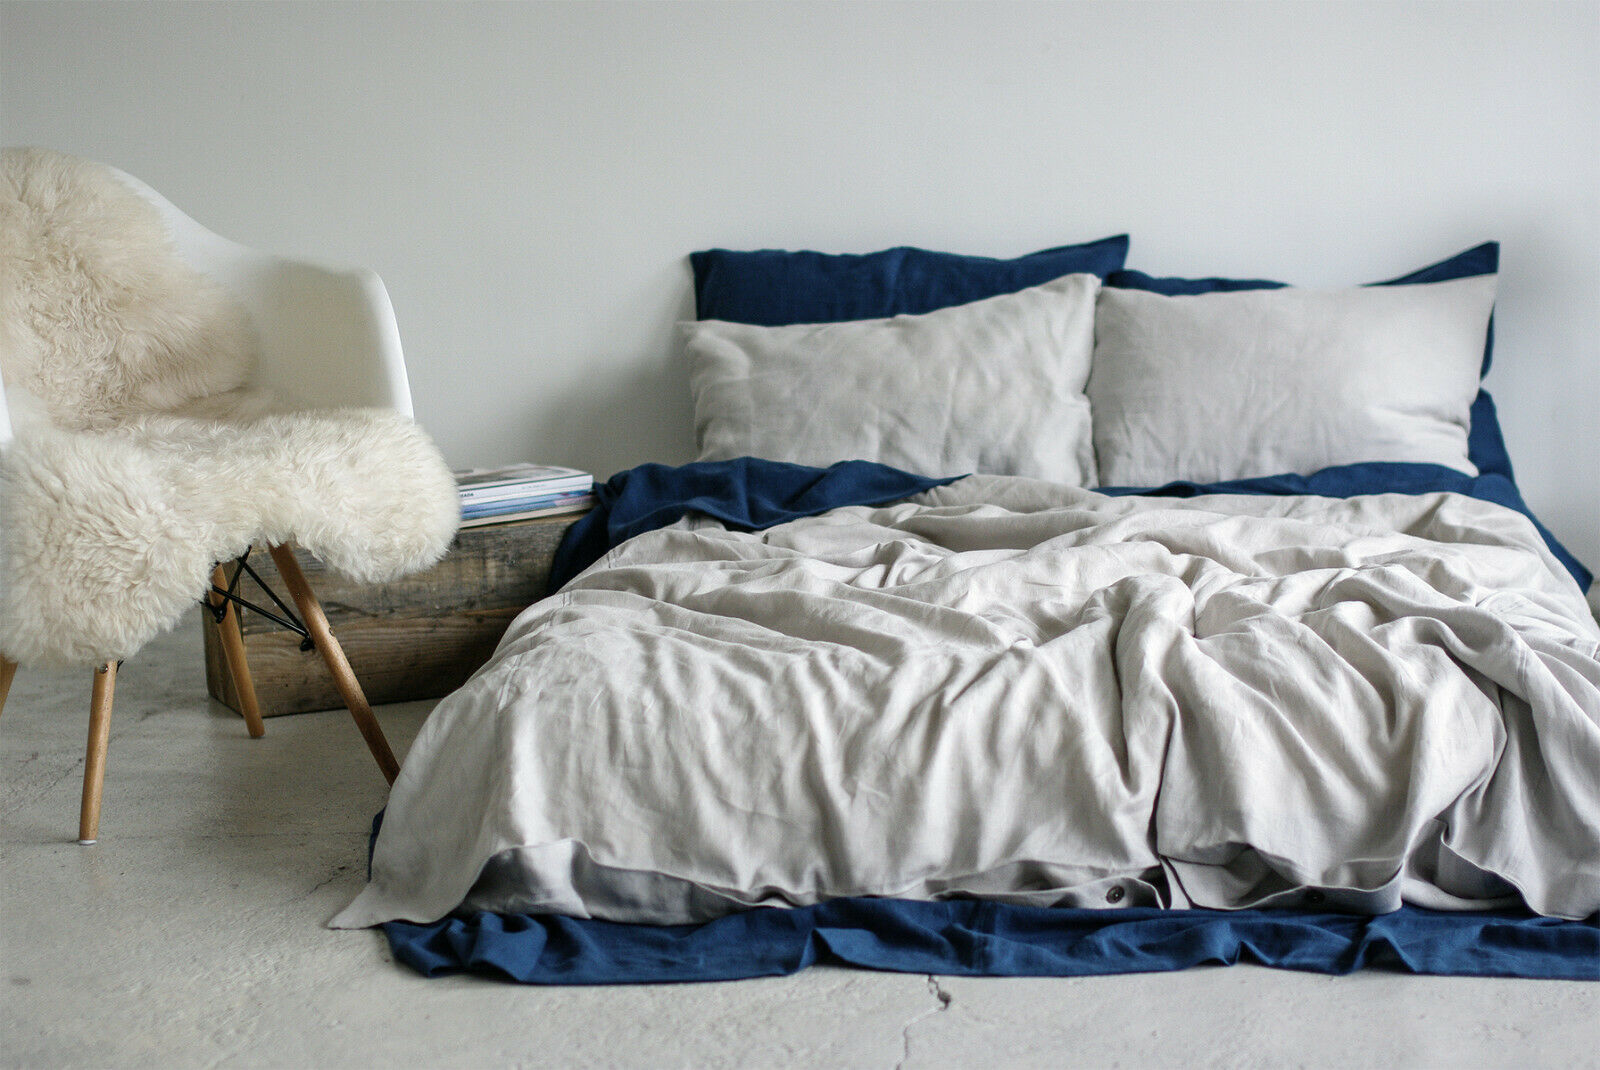 Coconut Milk Stonewashed Linen Bed Set